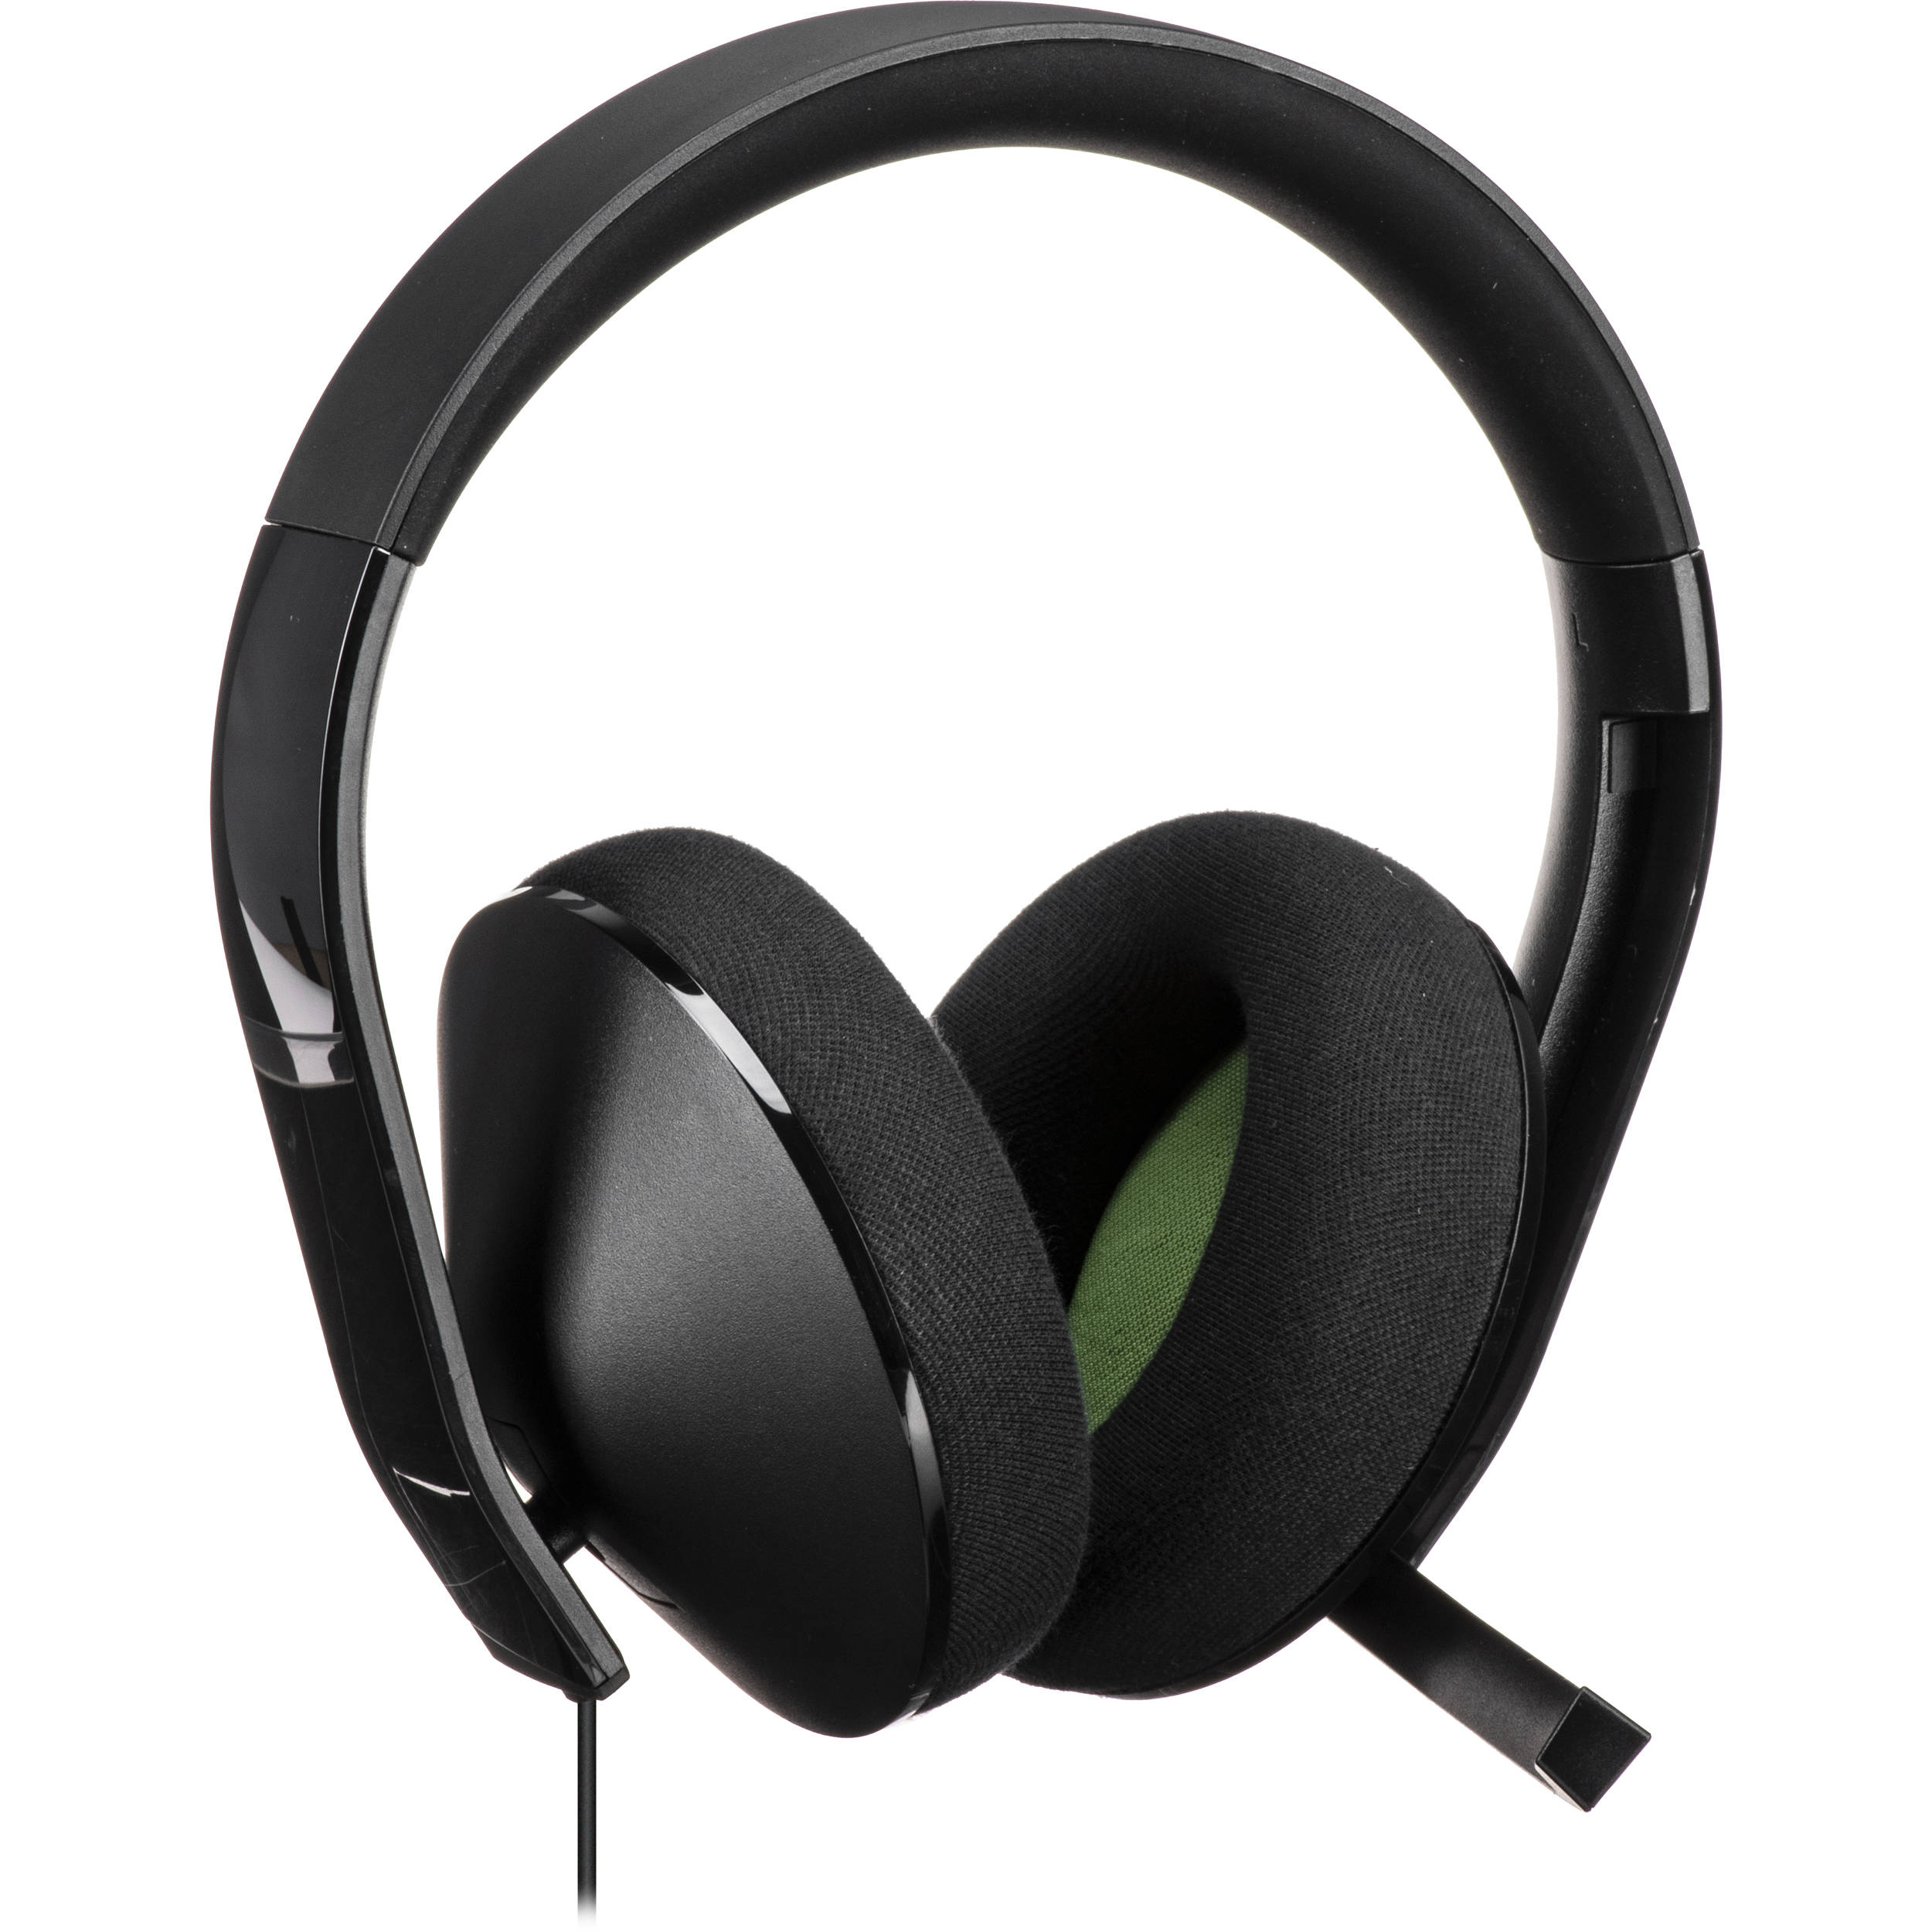 Headphone that working on xbox one stereo